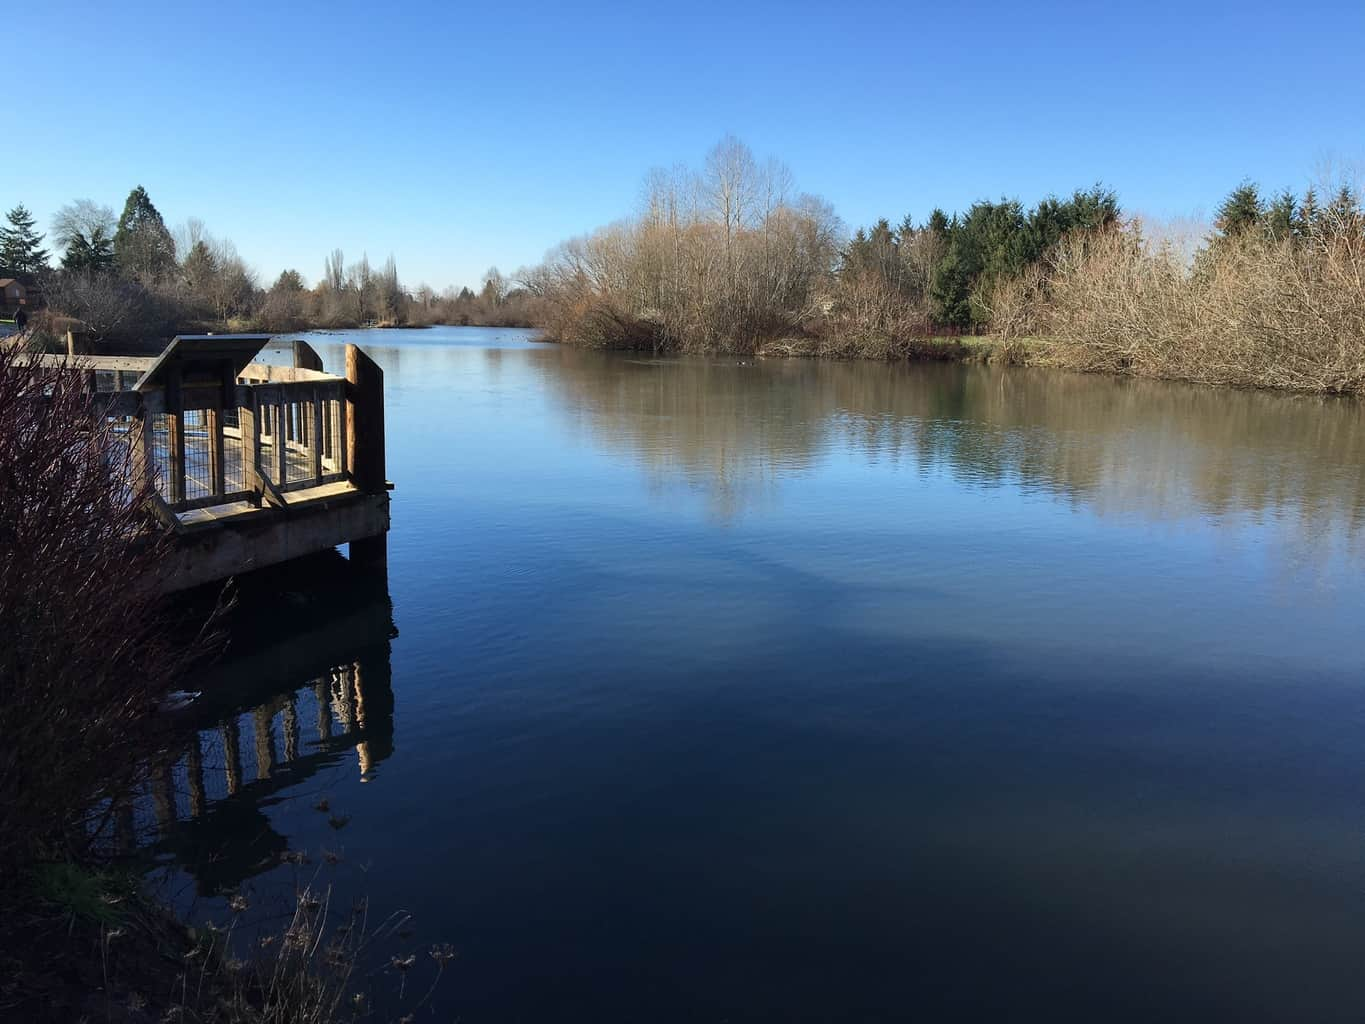 commonwealth lake is a park pond with fishing near beaverton